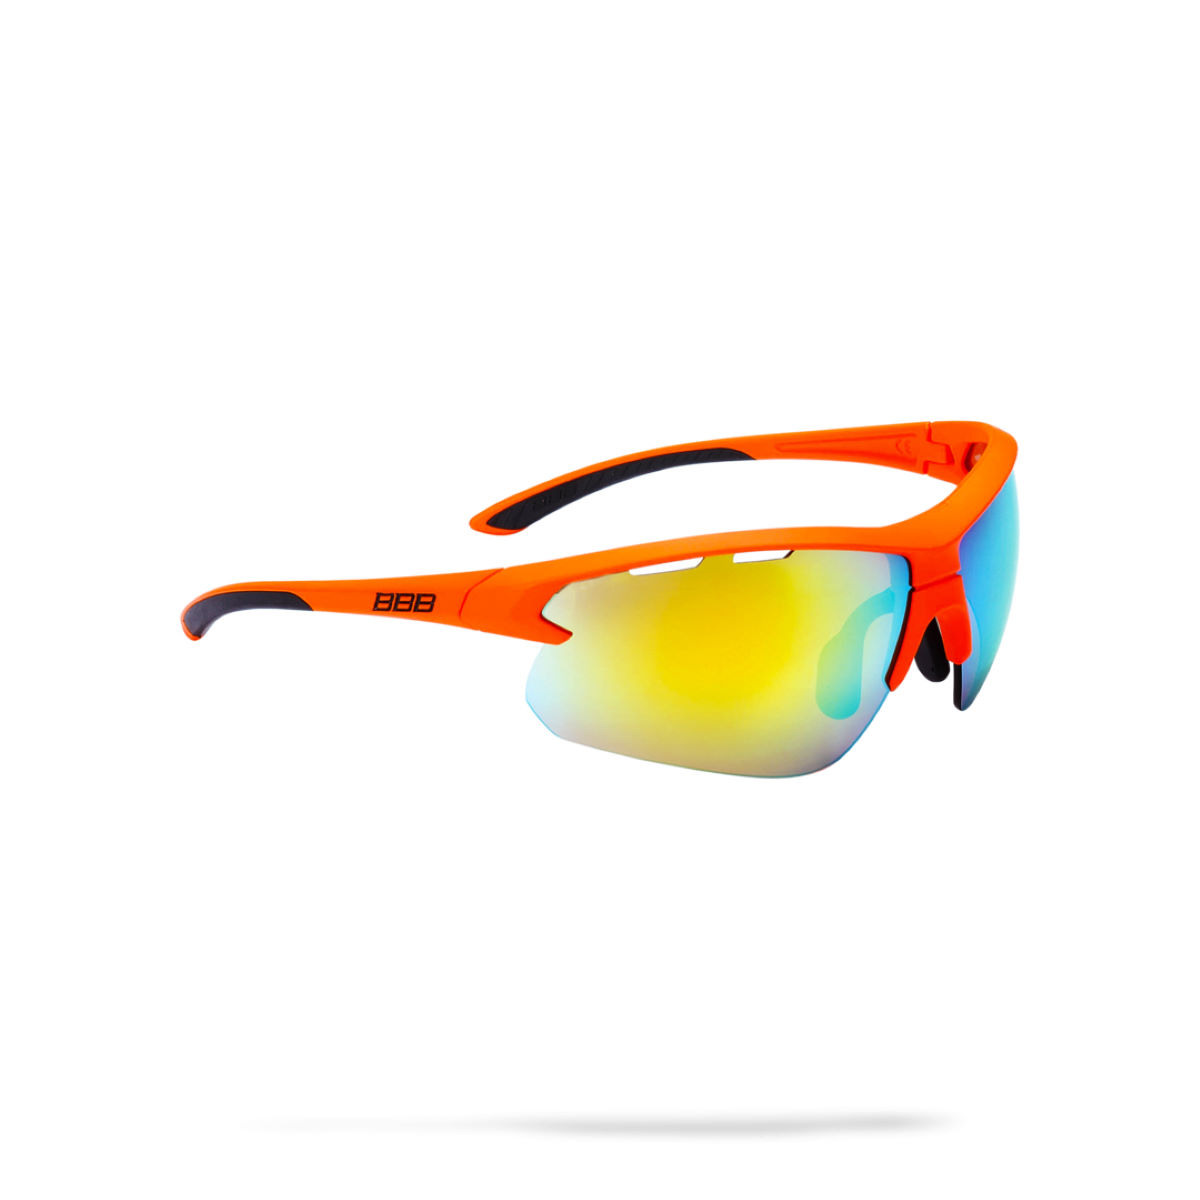 Lunettes de soleil BBB Impulse - Orange Lens Matte Orange